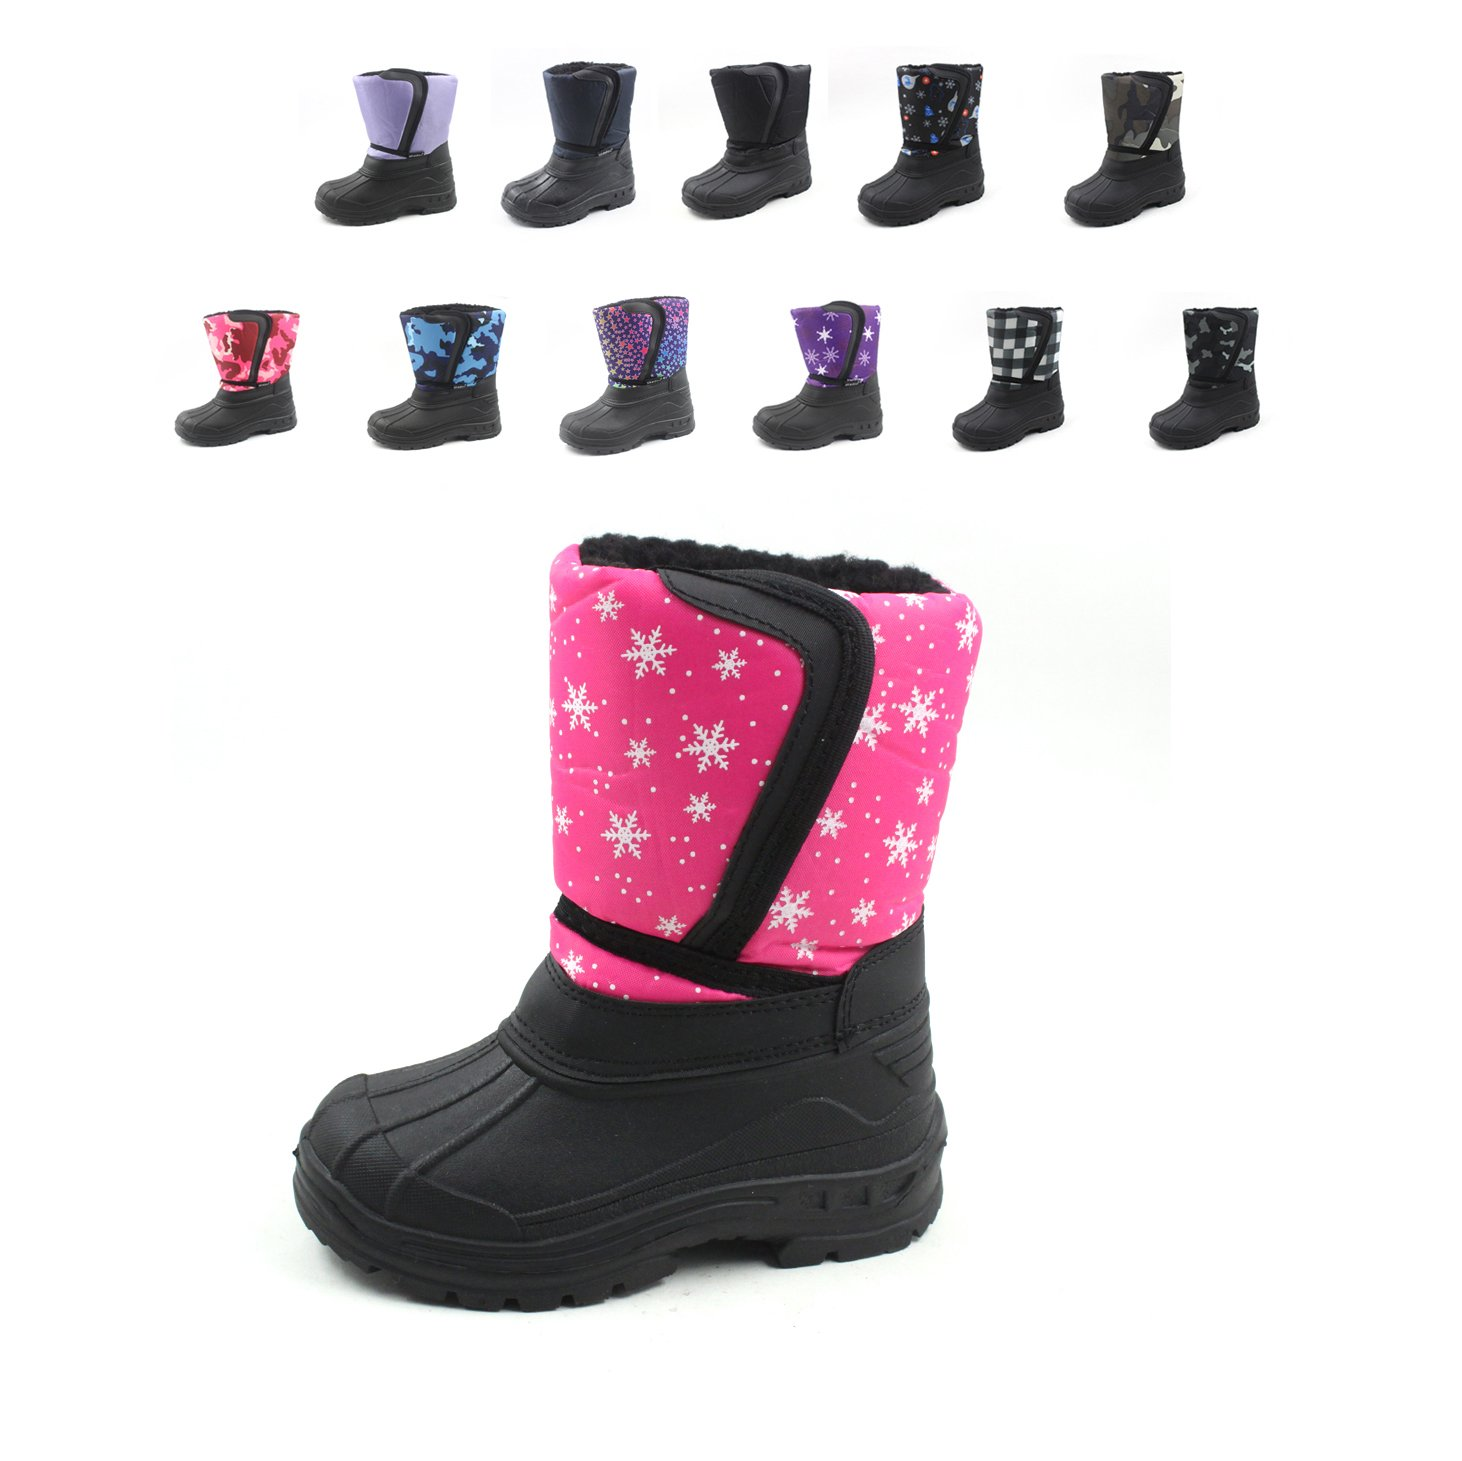 Ska-Doo Cold Weather Snow Boot 1319 Pink Snowflakes Size 10